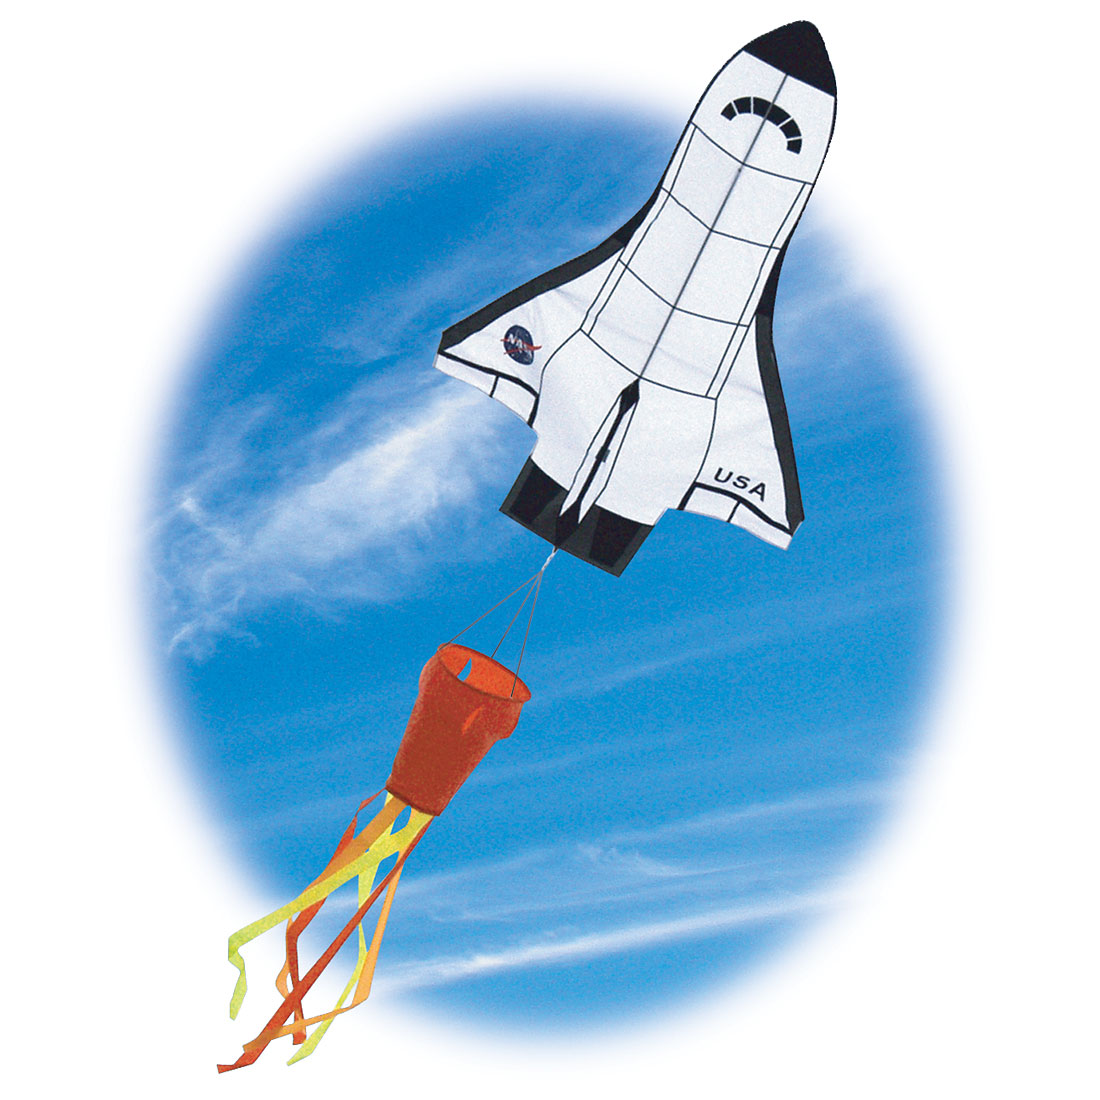 Space Shuttle Kite (W33043)